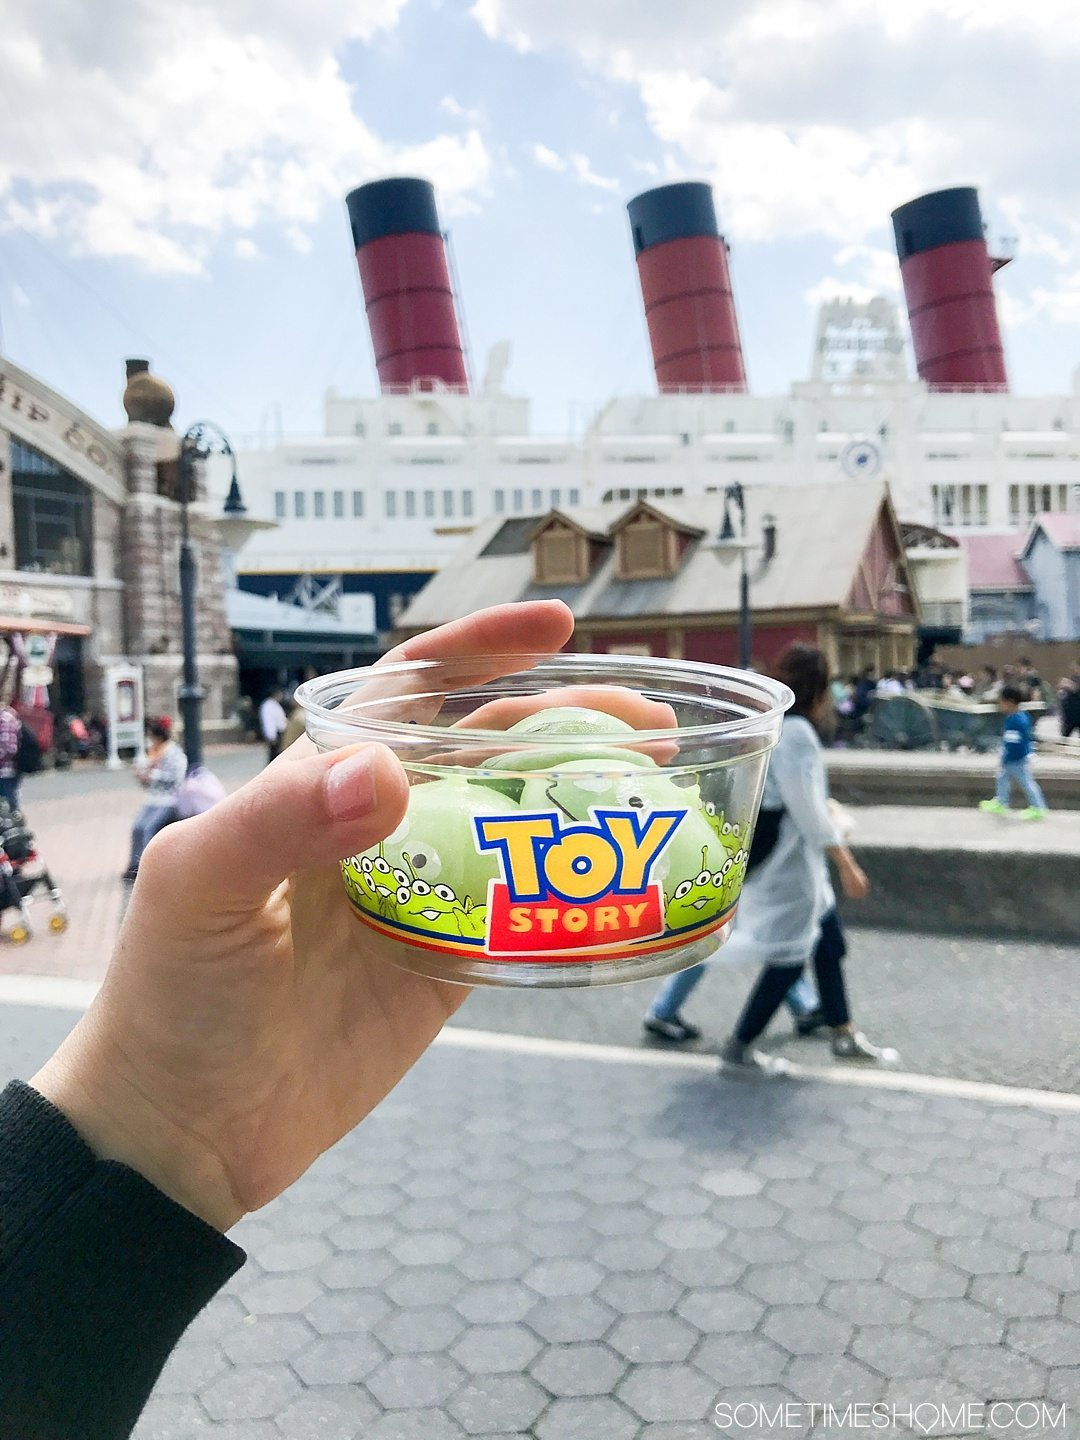 The Ultimate First-Timer's Guide to Tokyo DisneySea on Sometimes Home travel blog. Photo of a snack of Toy Story's Green Aliens in mochi form!